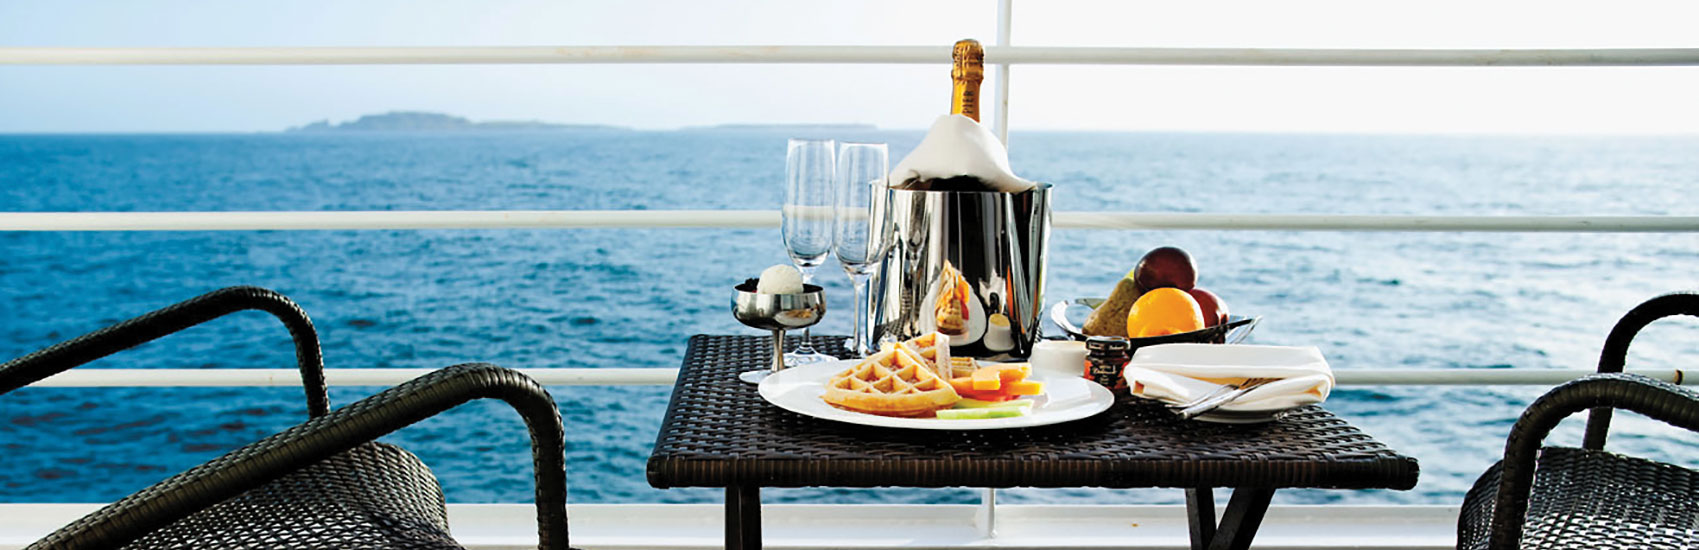 Exclusive Offer with Silversea Cruises 0